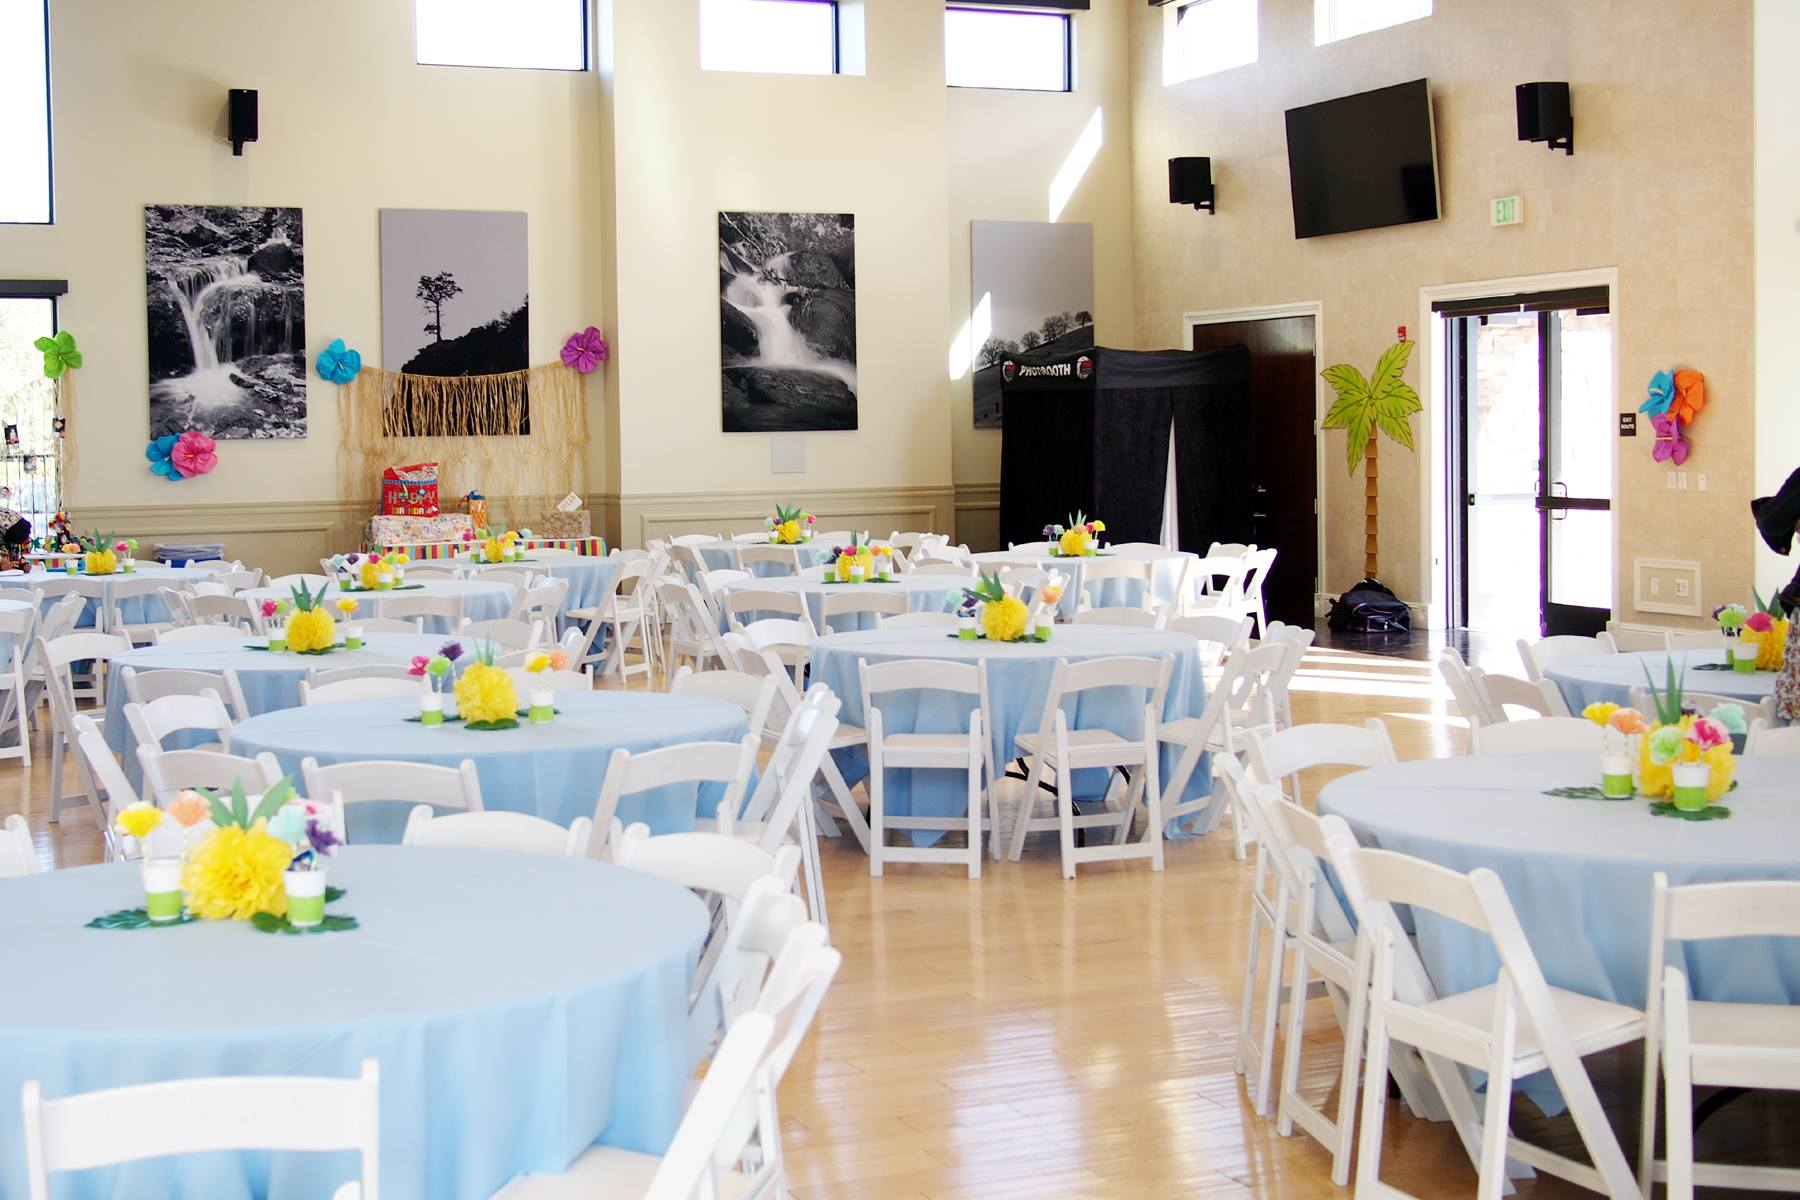 Blue Tablecloths and Tropical Centerpieces